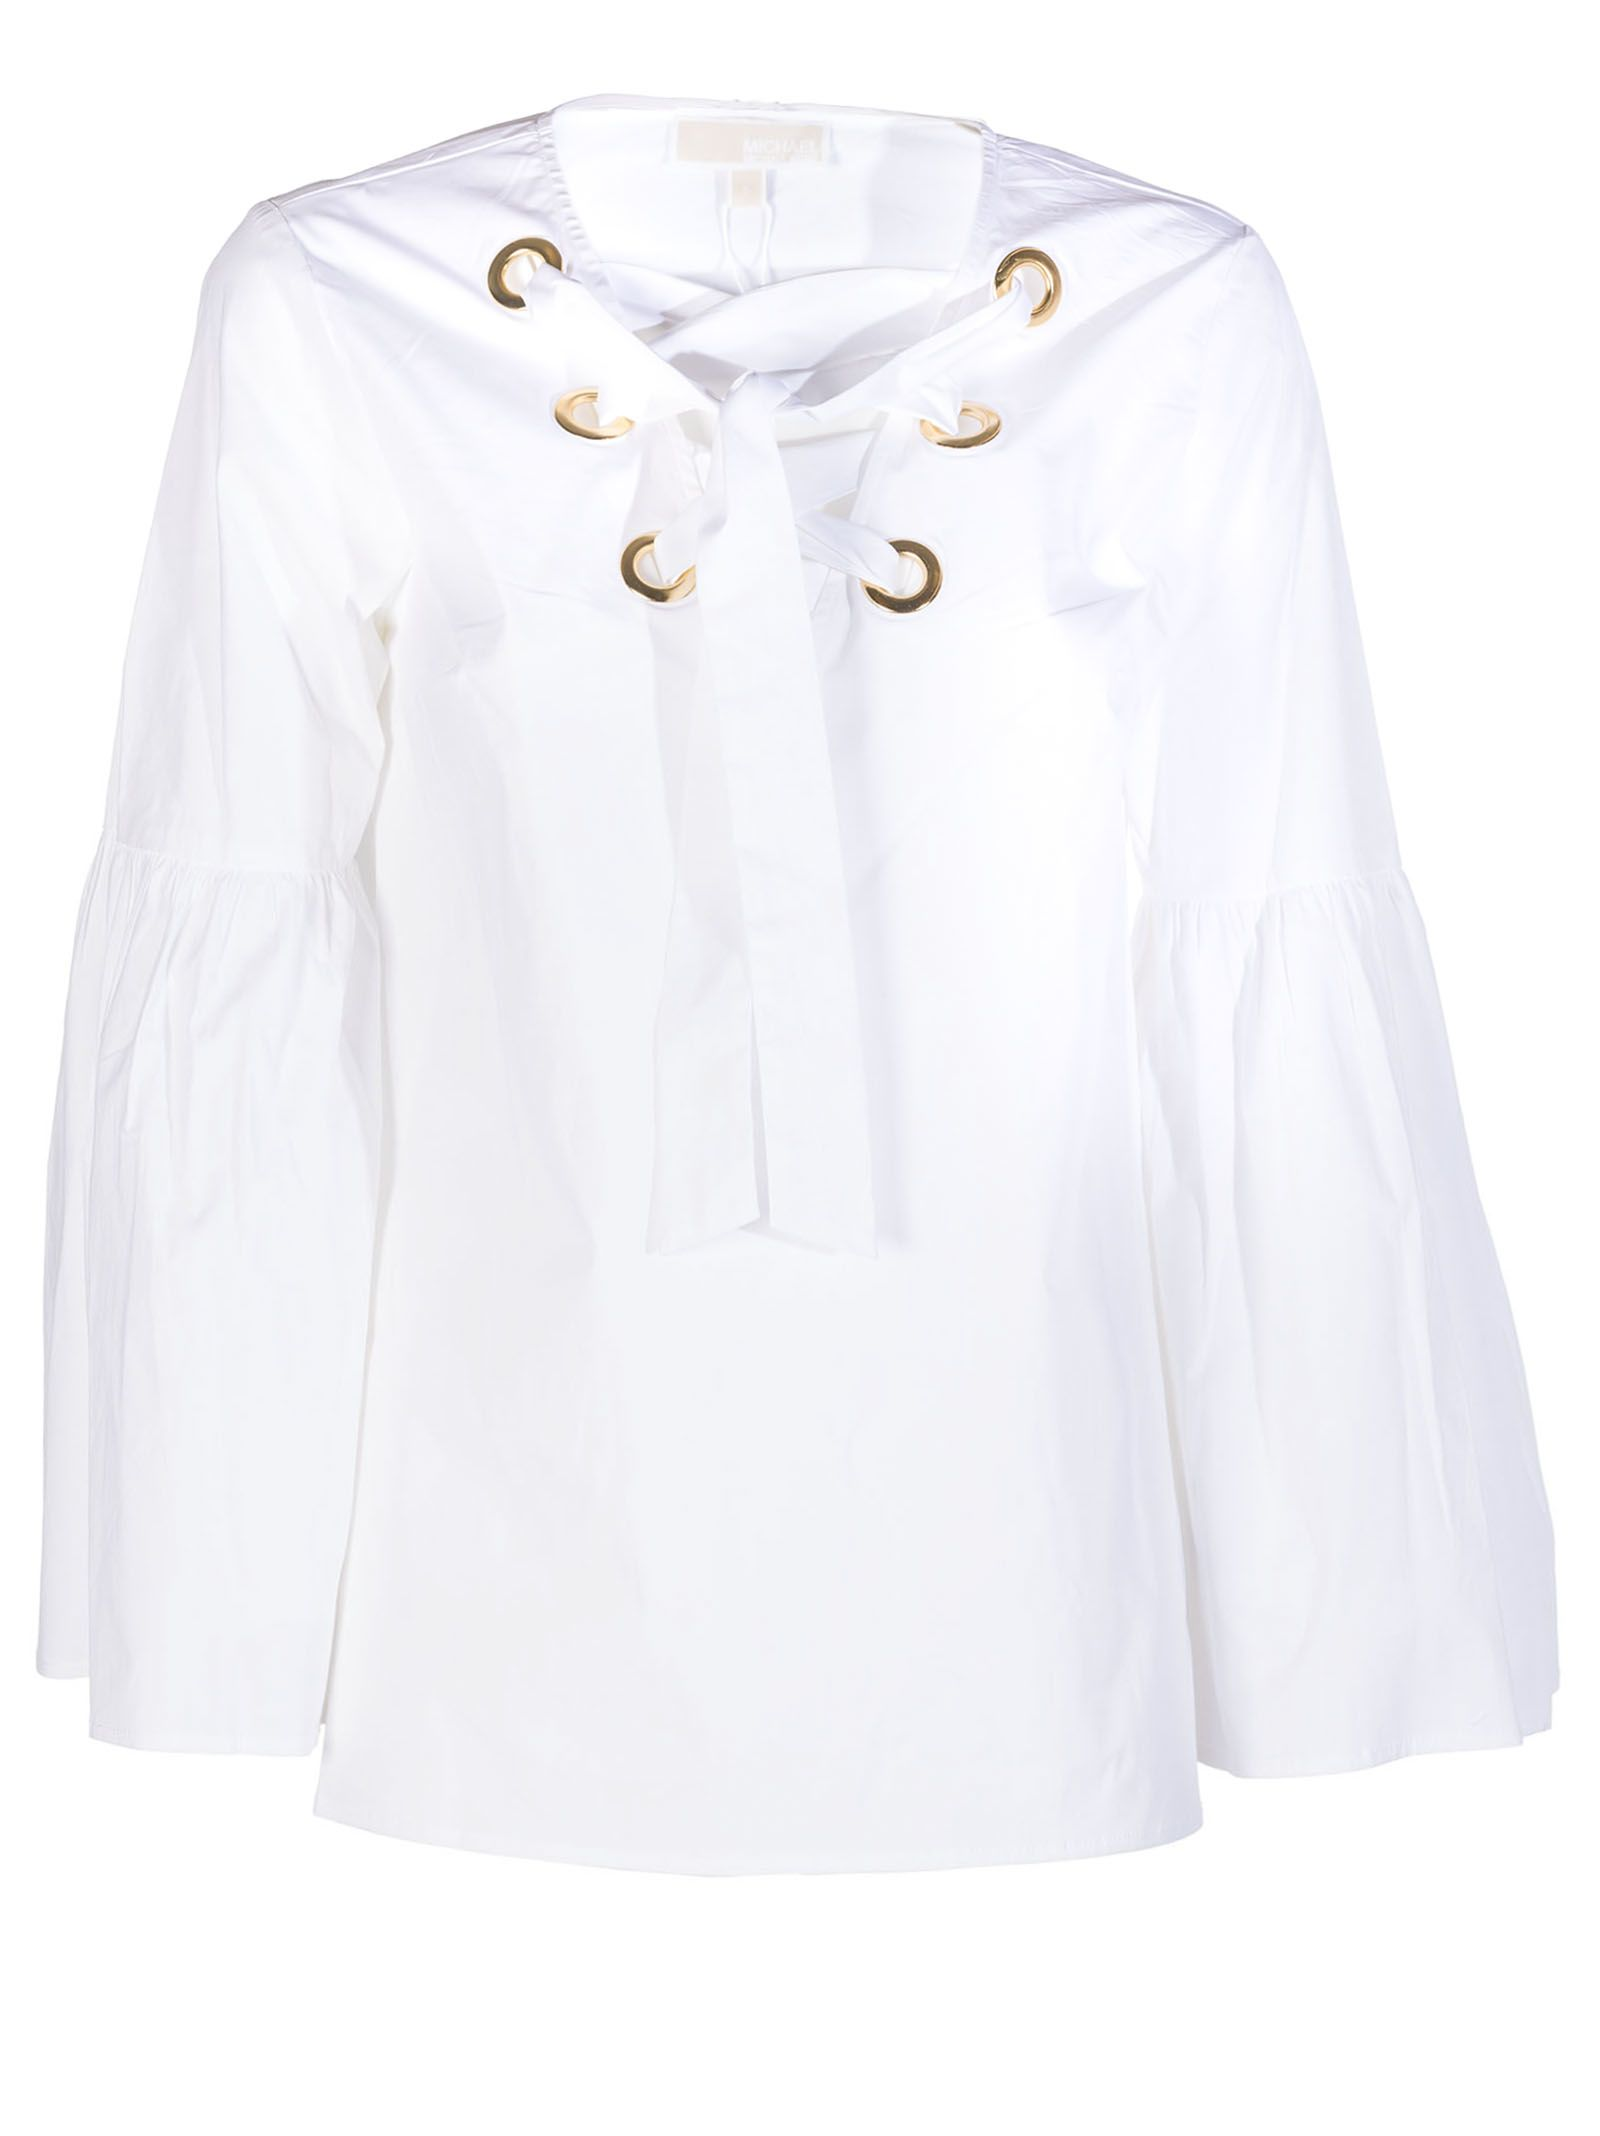 Michael Michael Kors | Michael Michael Kors Tie-neck Blouse | Clouty